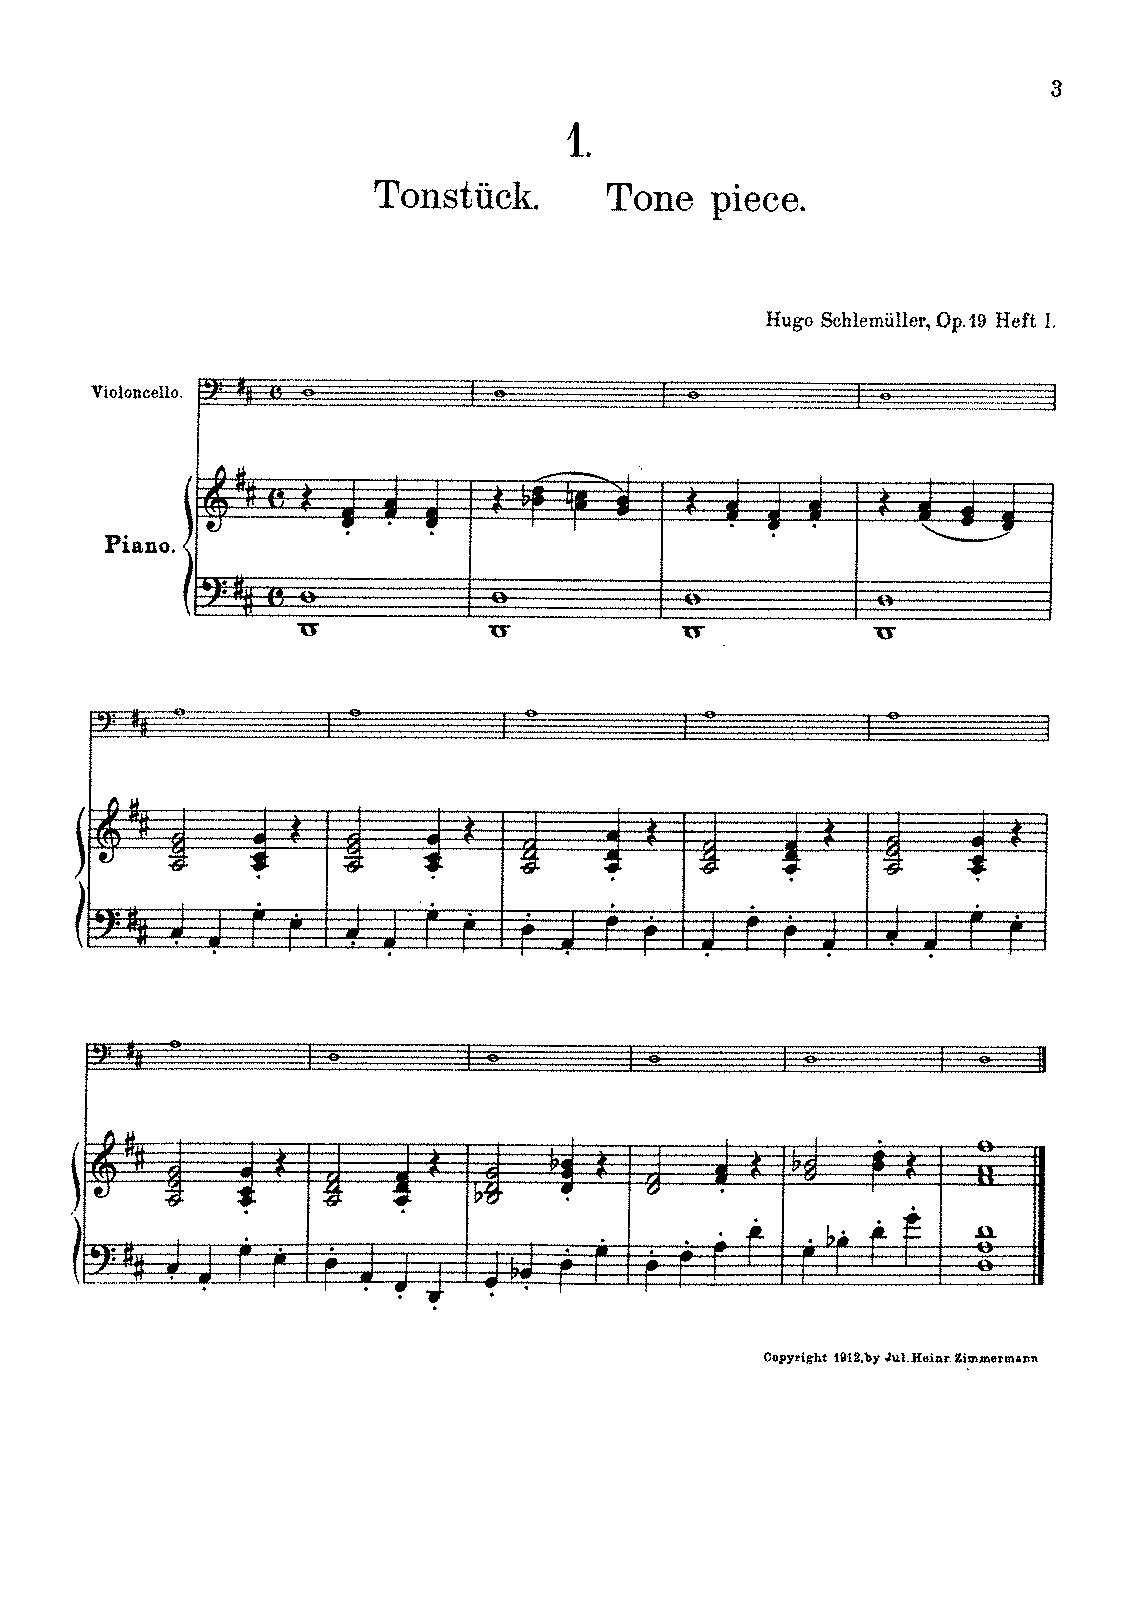 PMLP130105-Schlemueller, Hugo - The Young Cellist. op. 19 book 1 (score).pdf